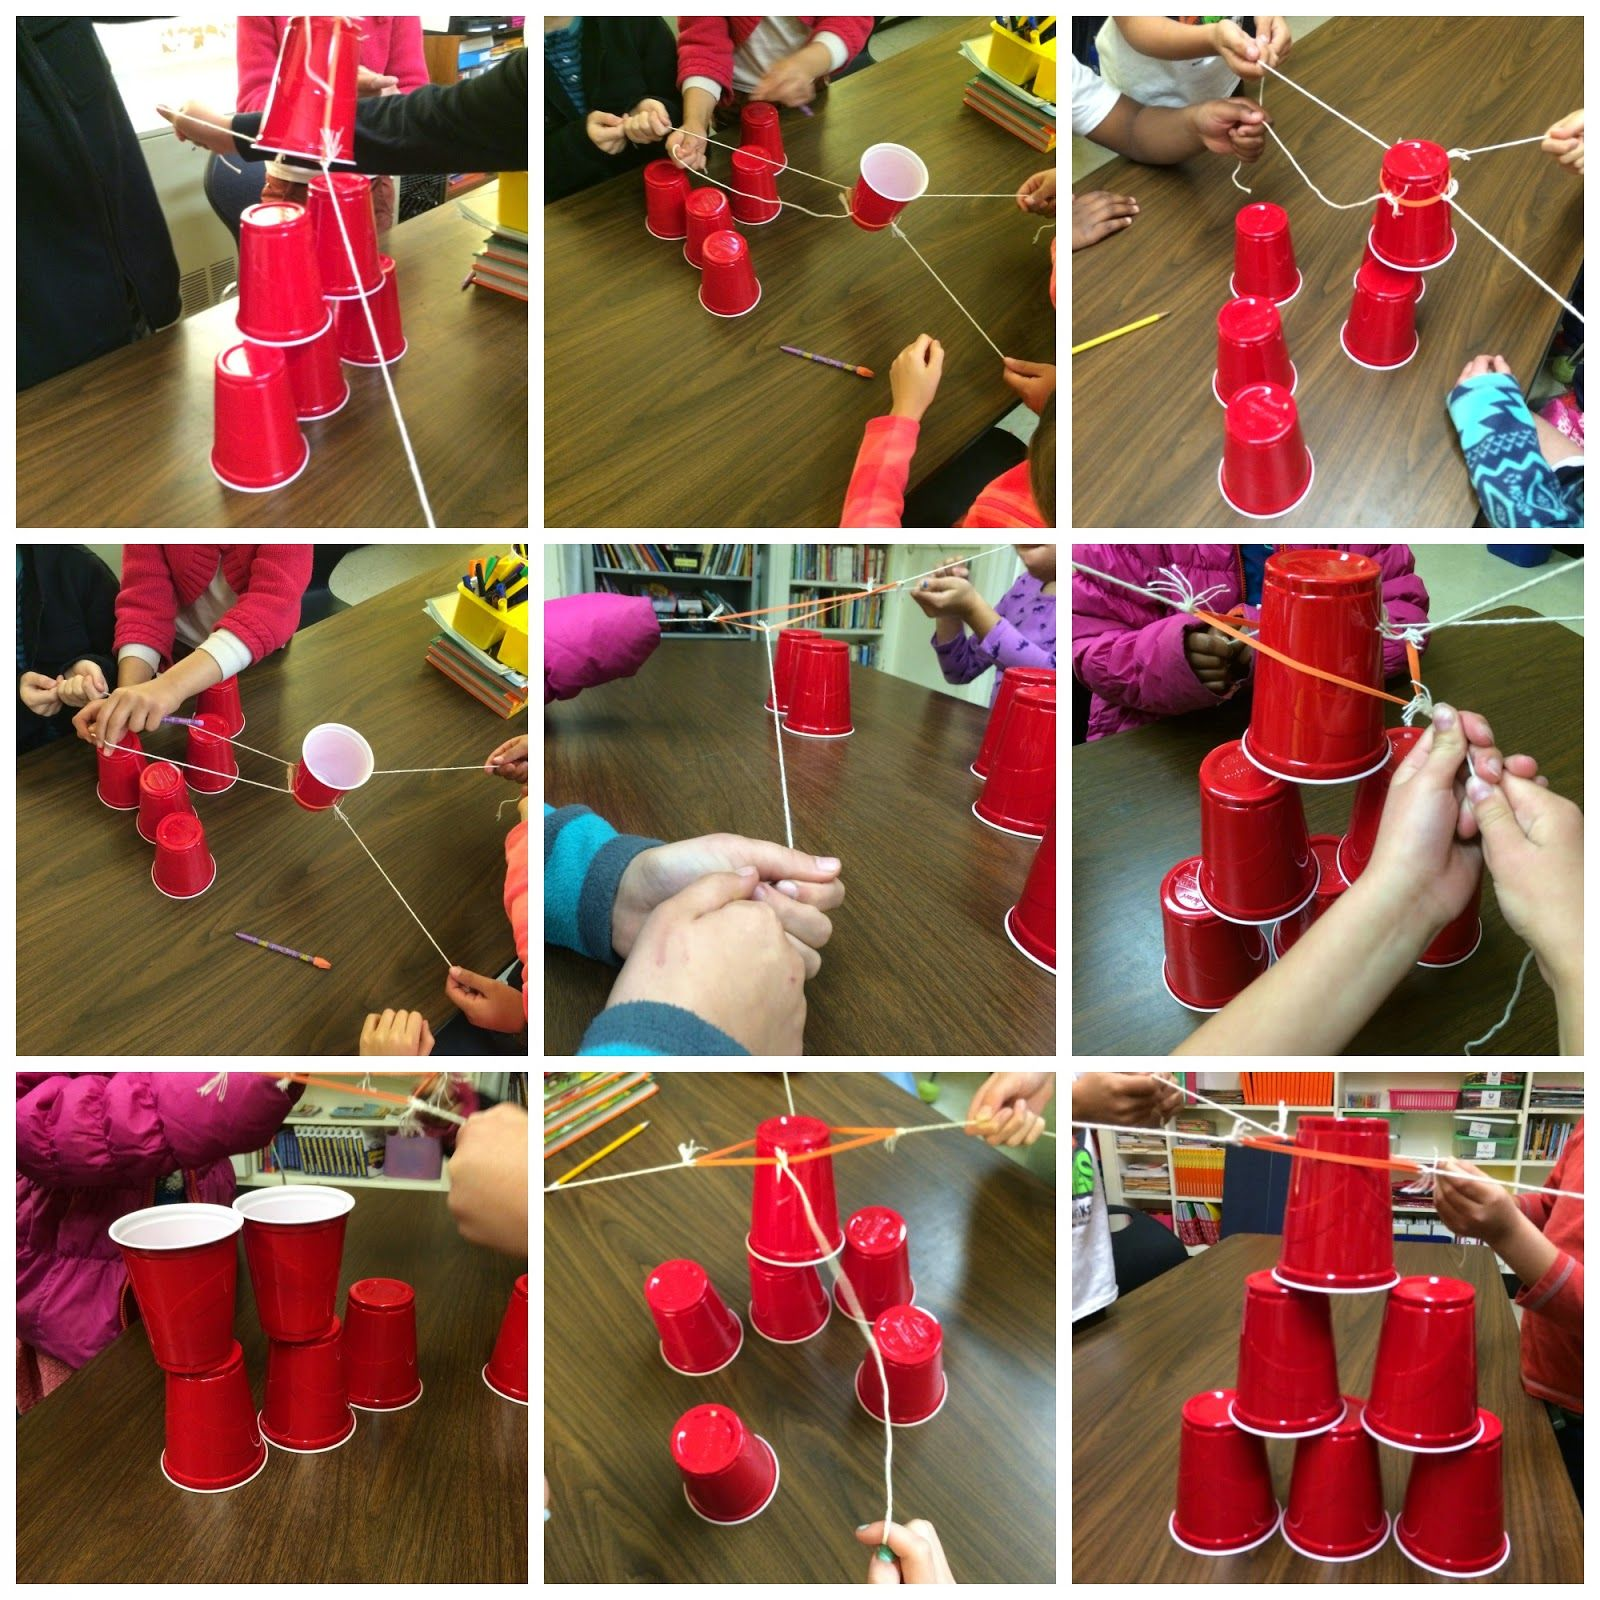 Teamwork in 3rd Grade Cup Stack (With images) Fun team